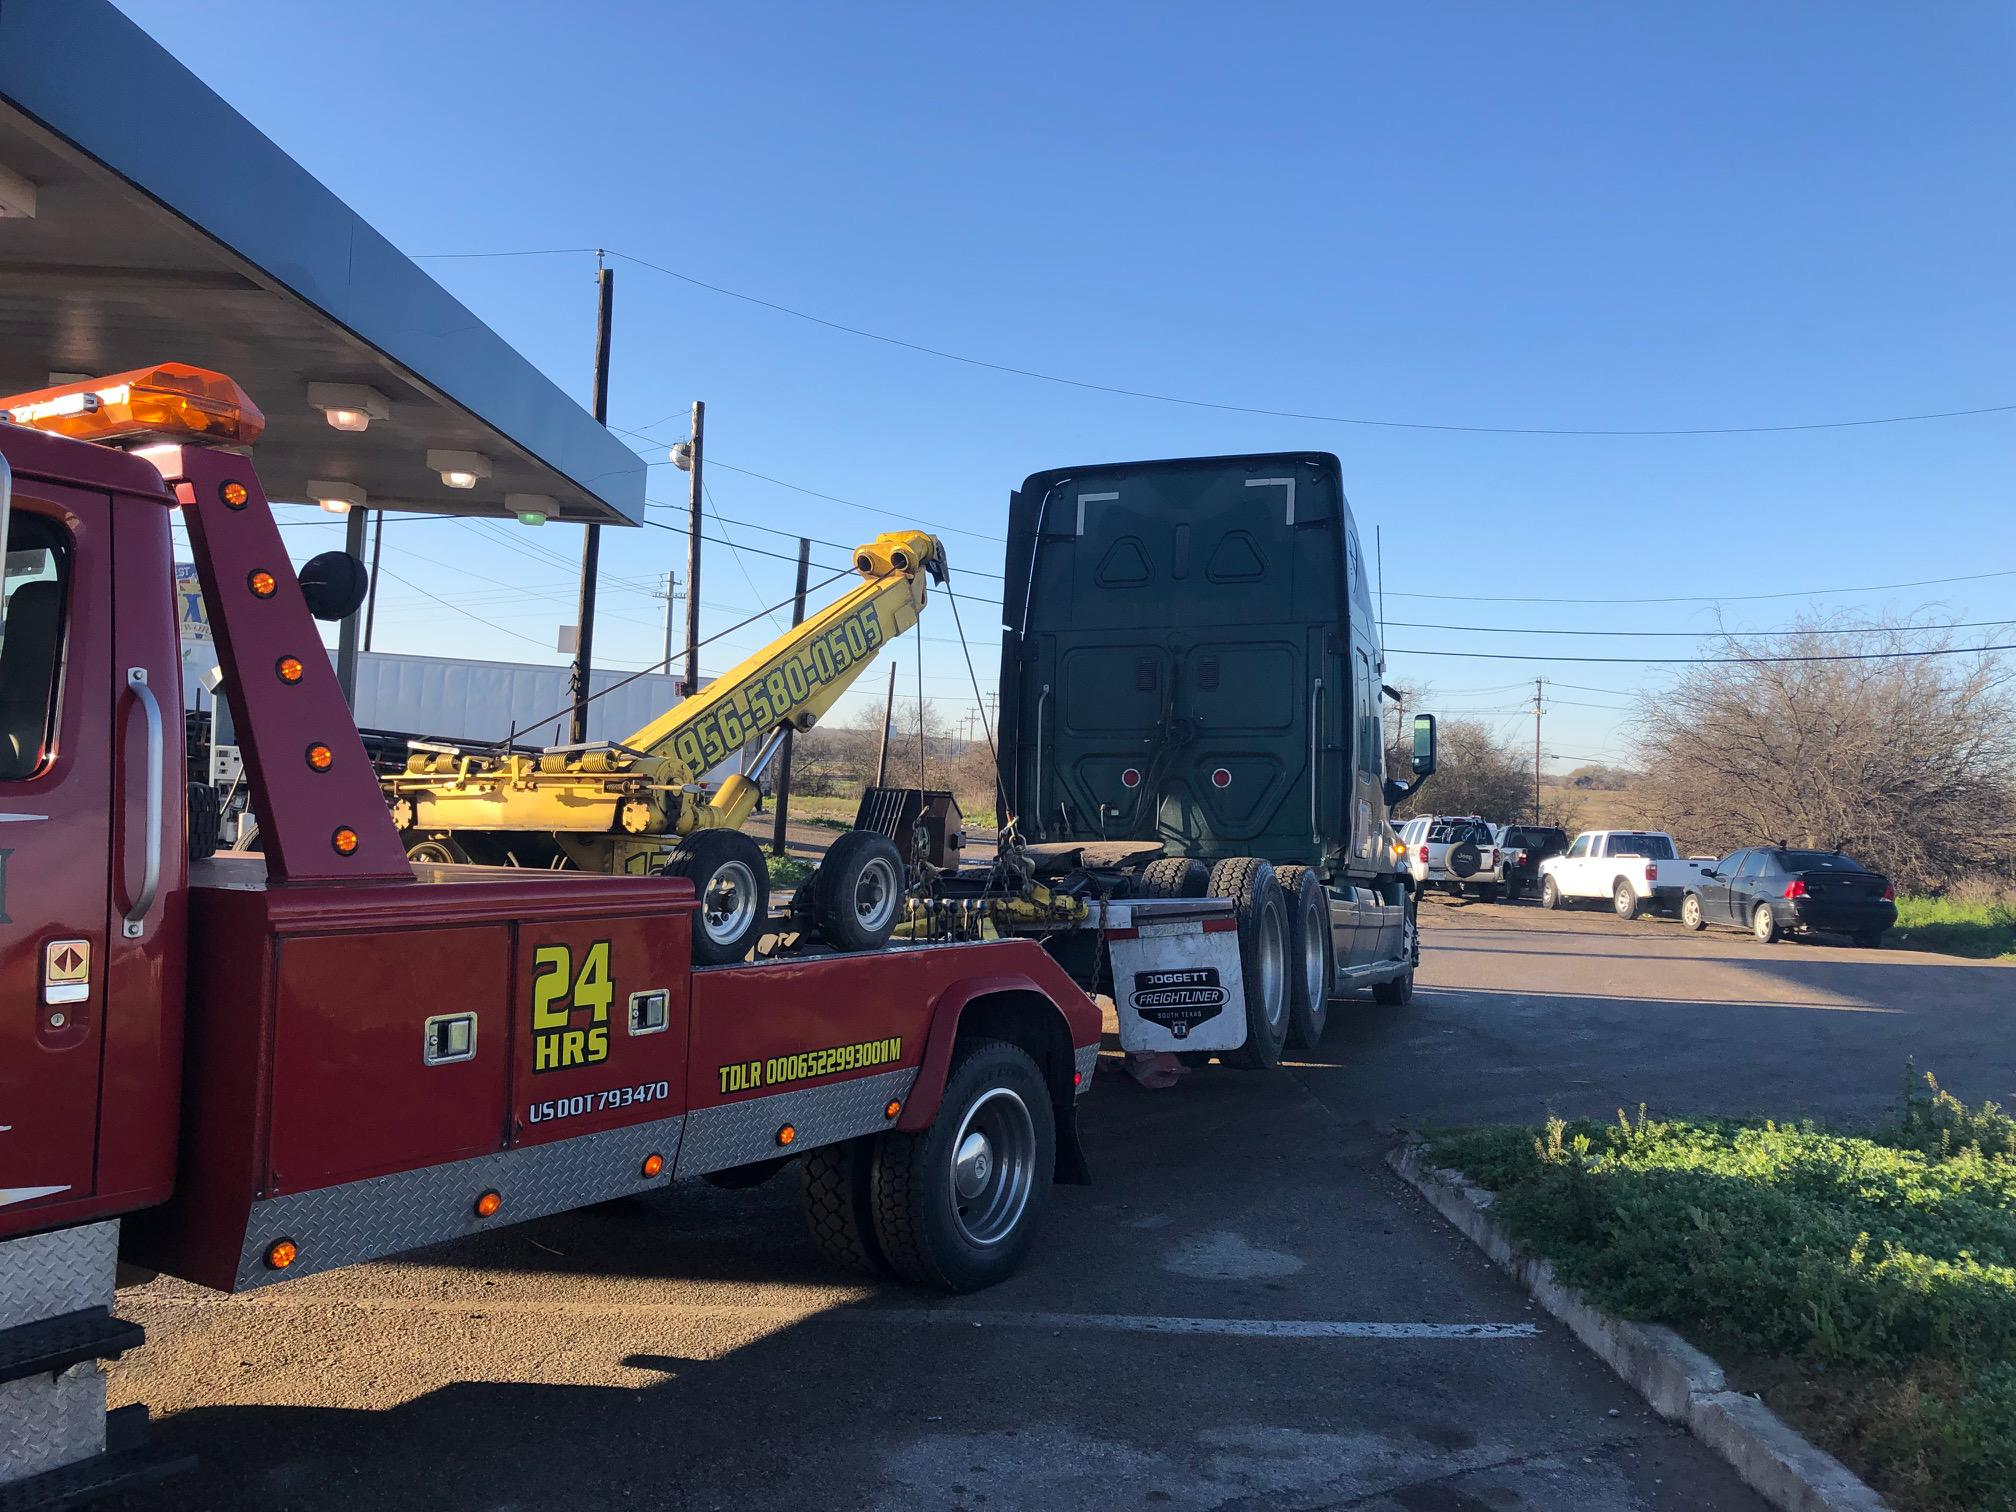 AMPM Roadside & Recovery image 12